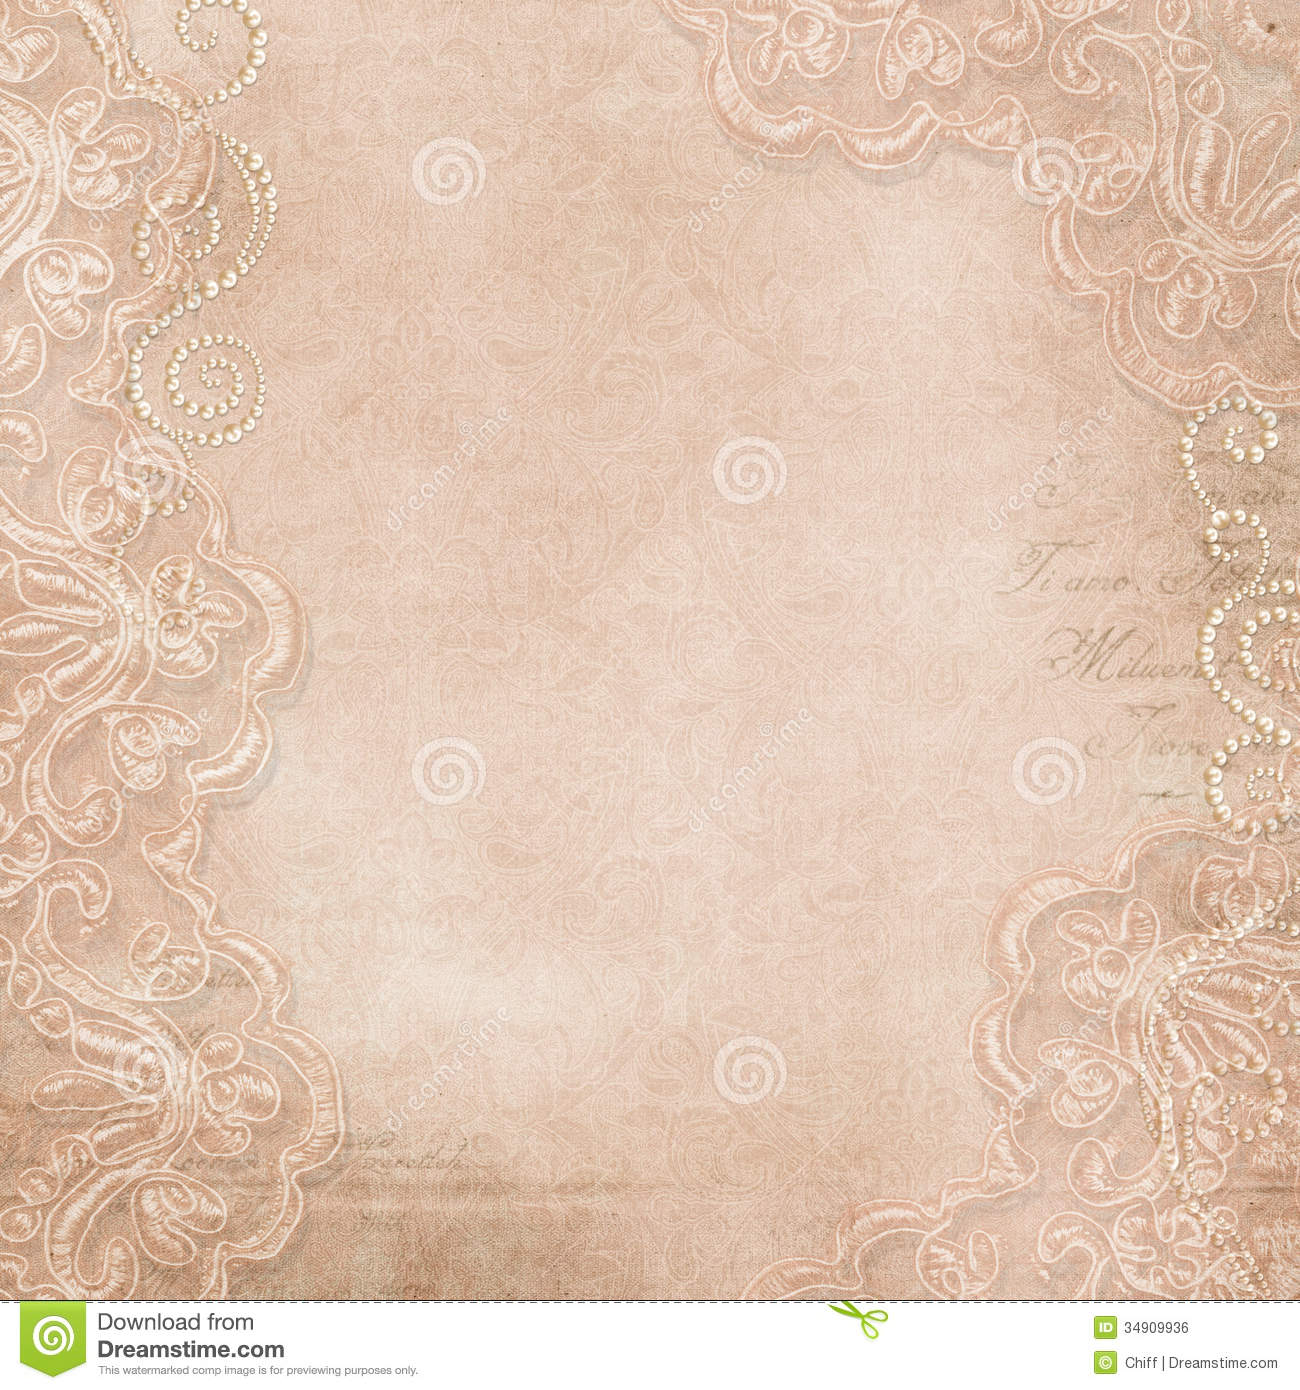 Vintage Gorgeous Background With Lace And Pearls Royalty ...